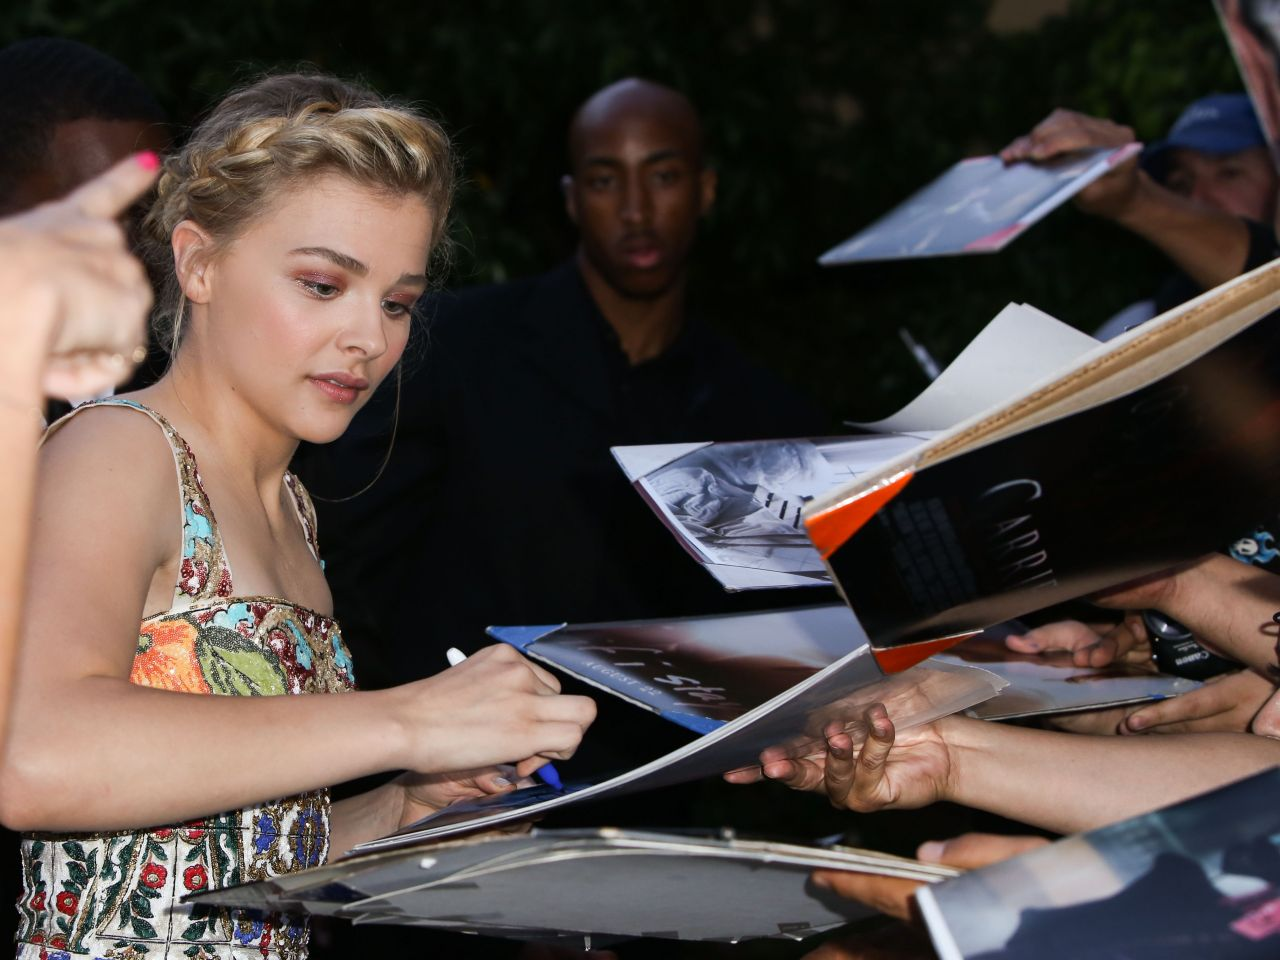 Chloe Moretz Meeting Fans in Los Angeles - June 2014